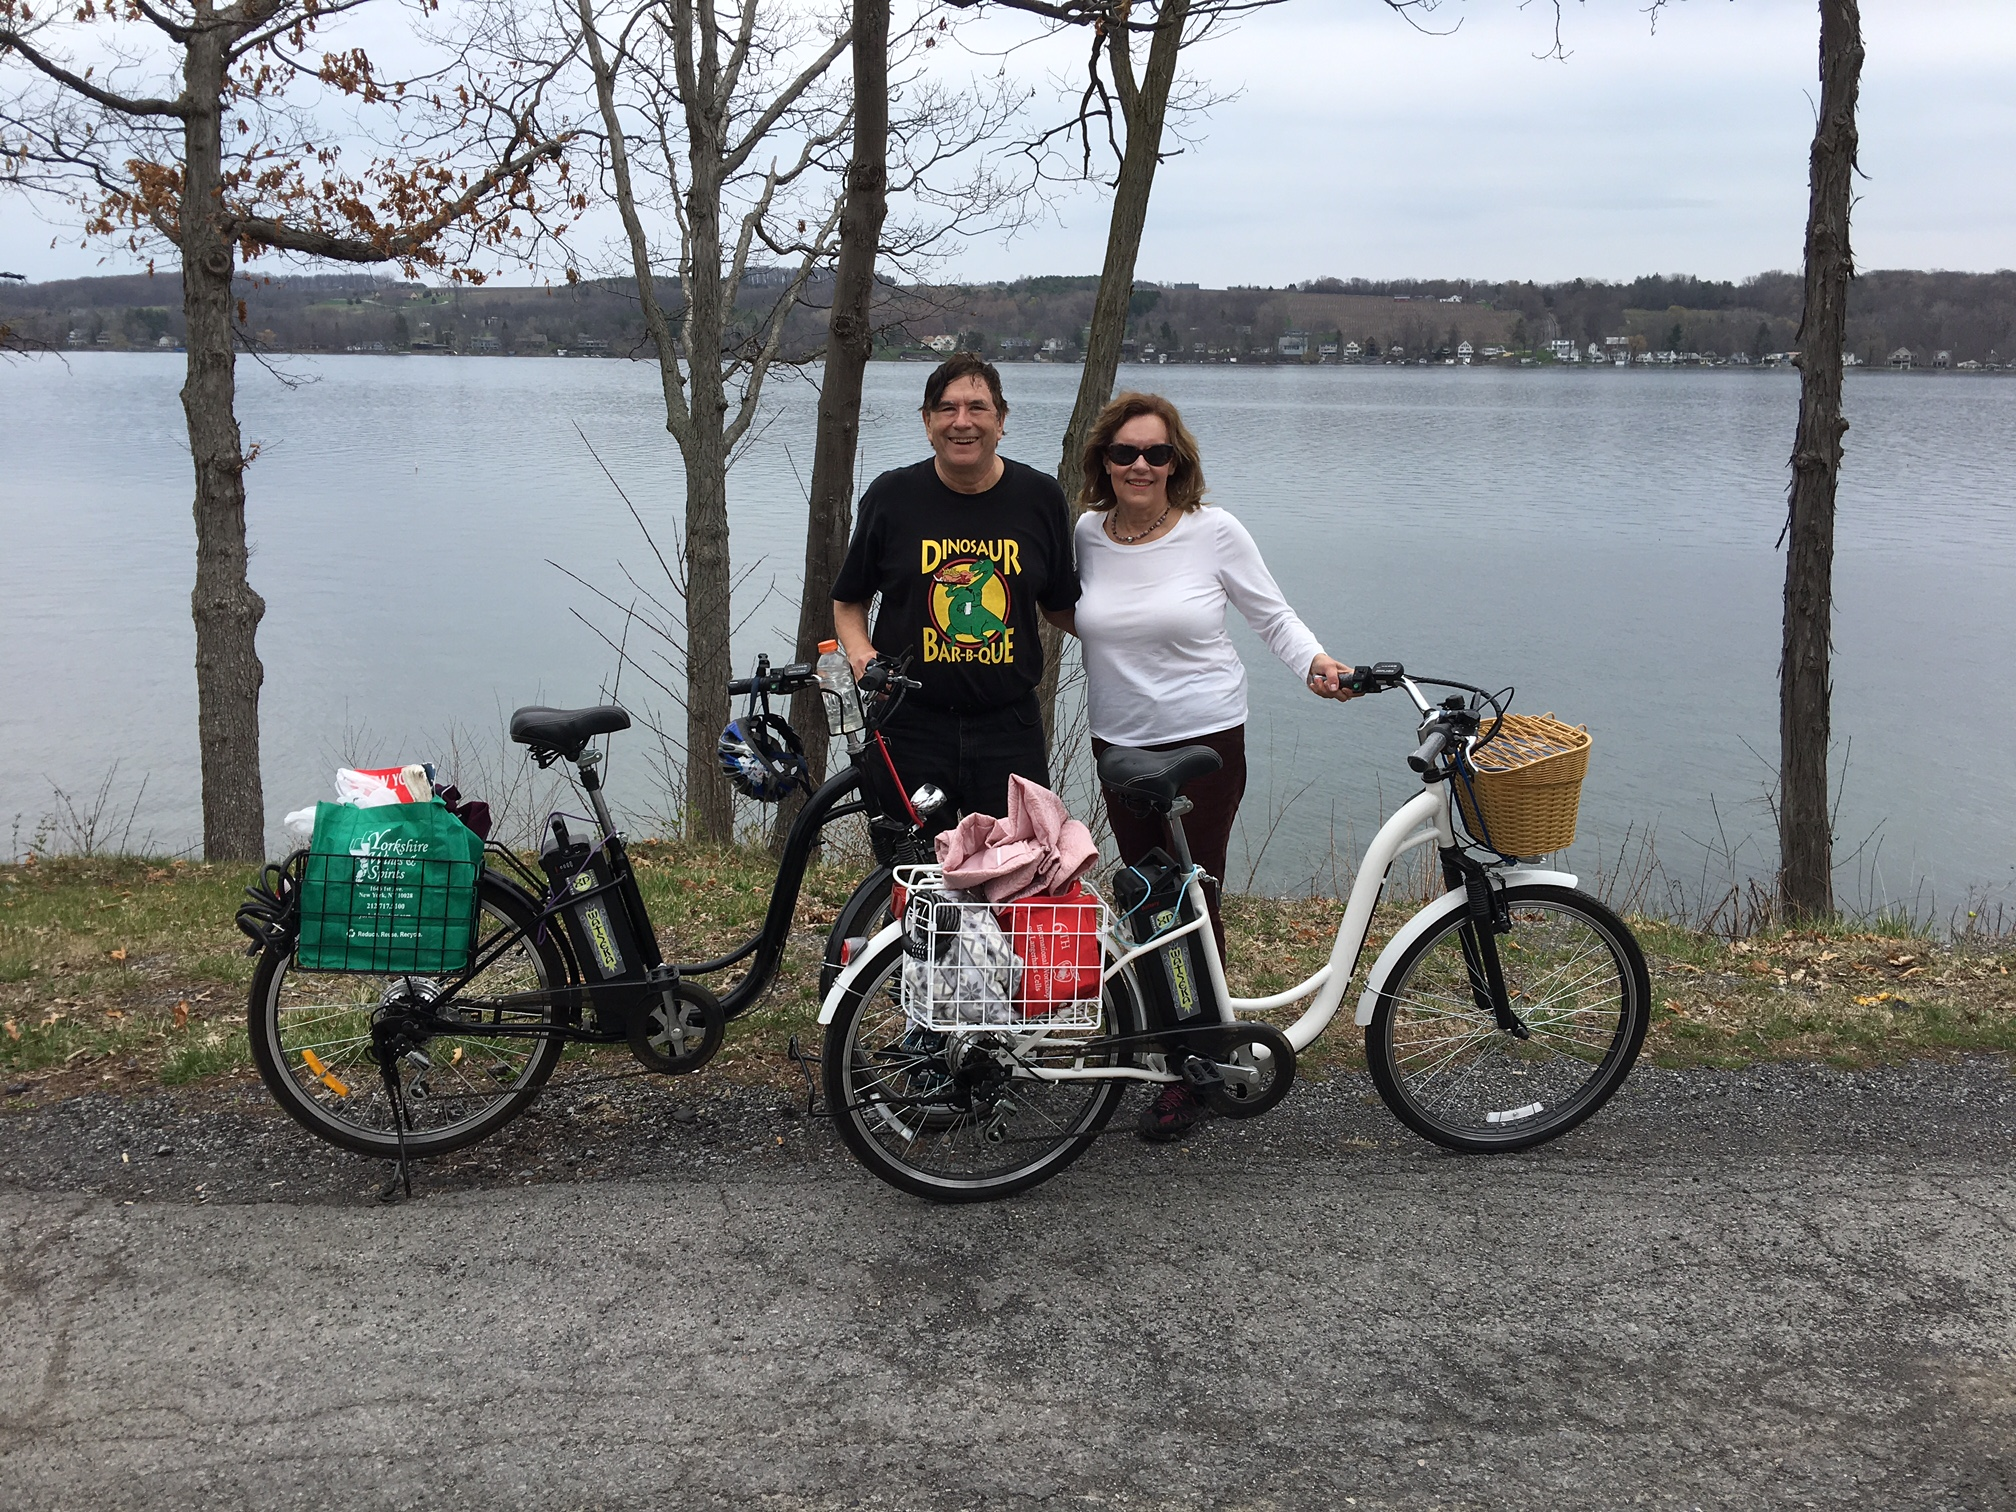 John & Lorraine, Keuka Lake, April 15, 2017